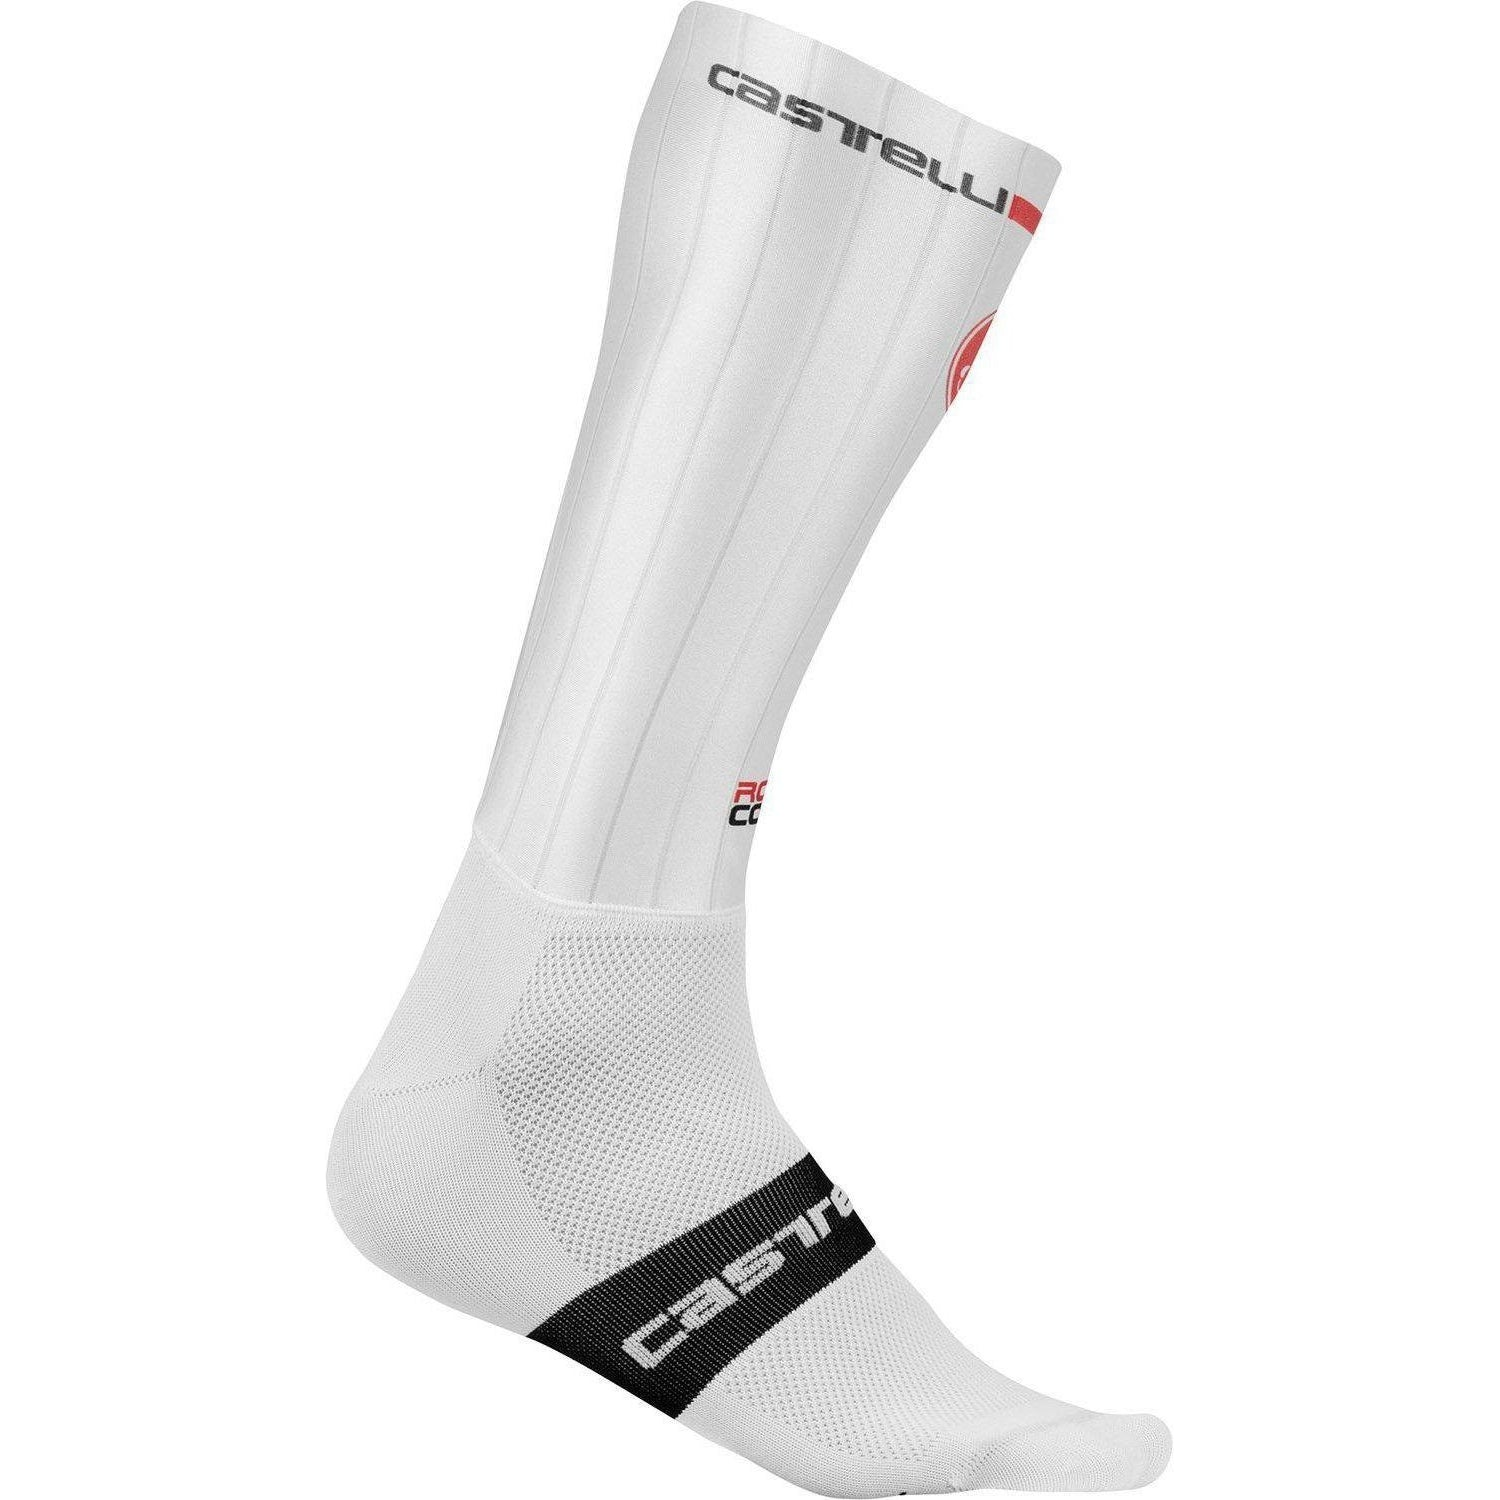 Castelli-Castelli Fast Feet Socks-White-S/M-CS1903200109-saddleback-elite-performance-cycling